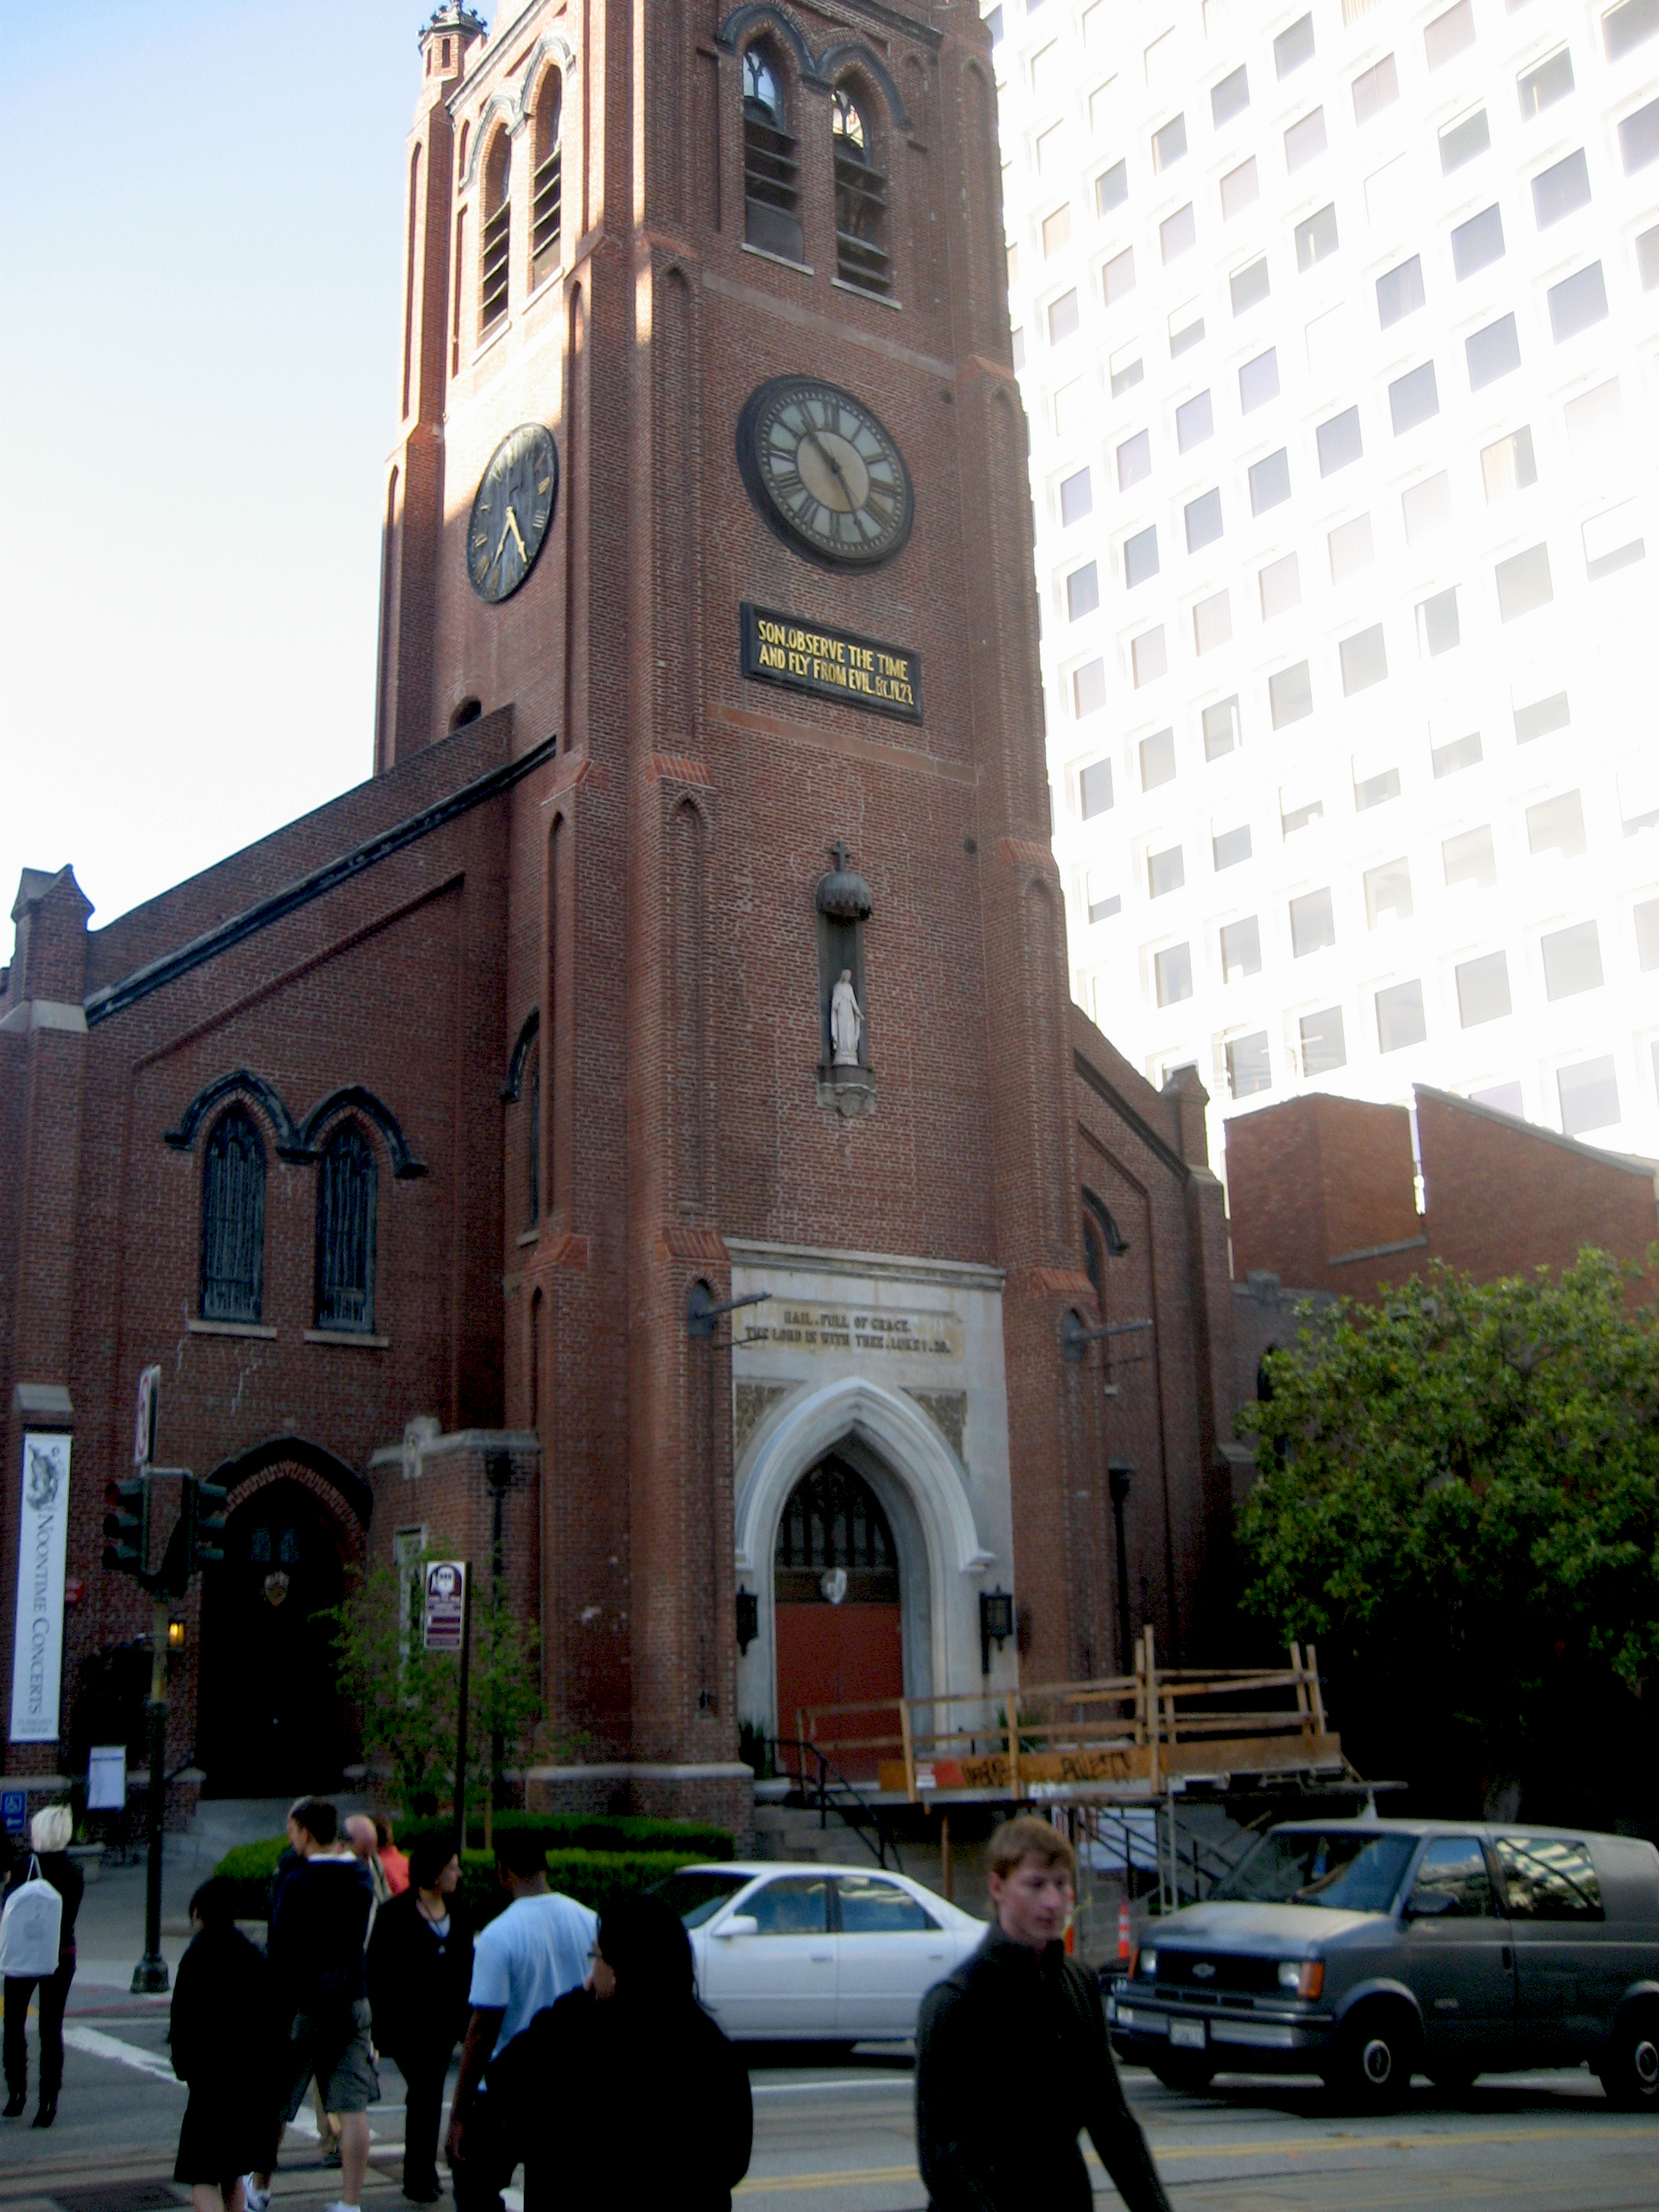 San Francisco's Chinatown, Old Saint Mary's Cathedral